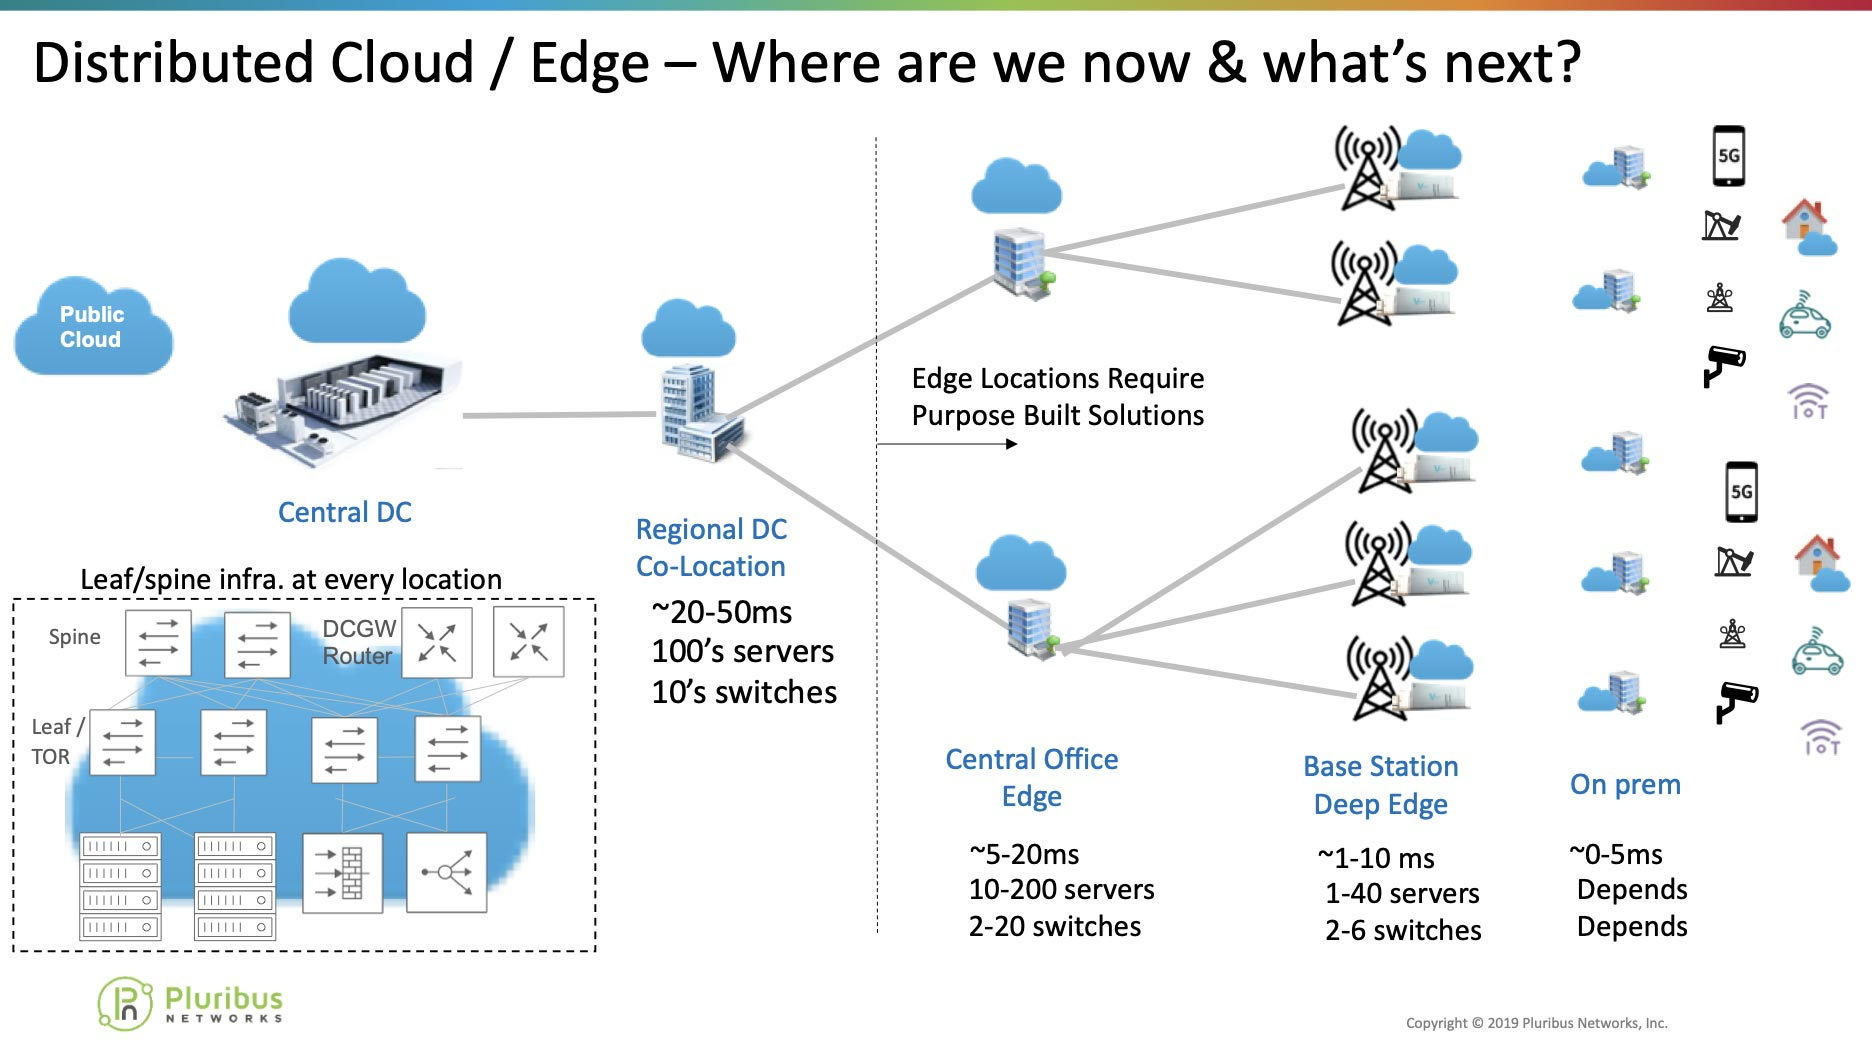 Distributed Cloud/Edge - Where are we now & what's next? diagram